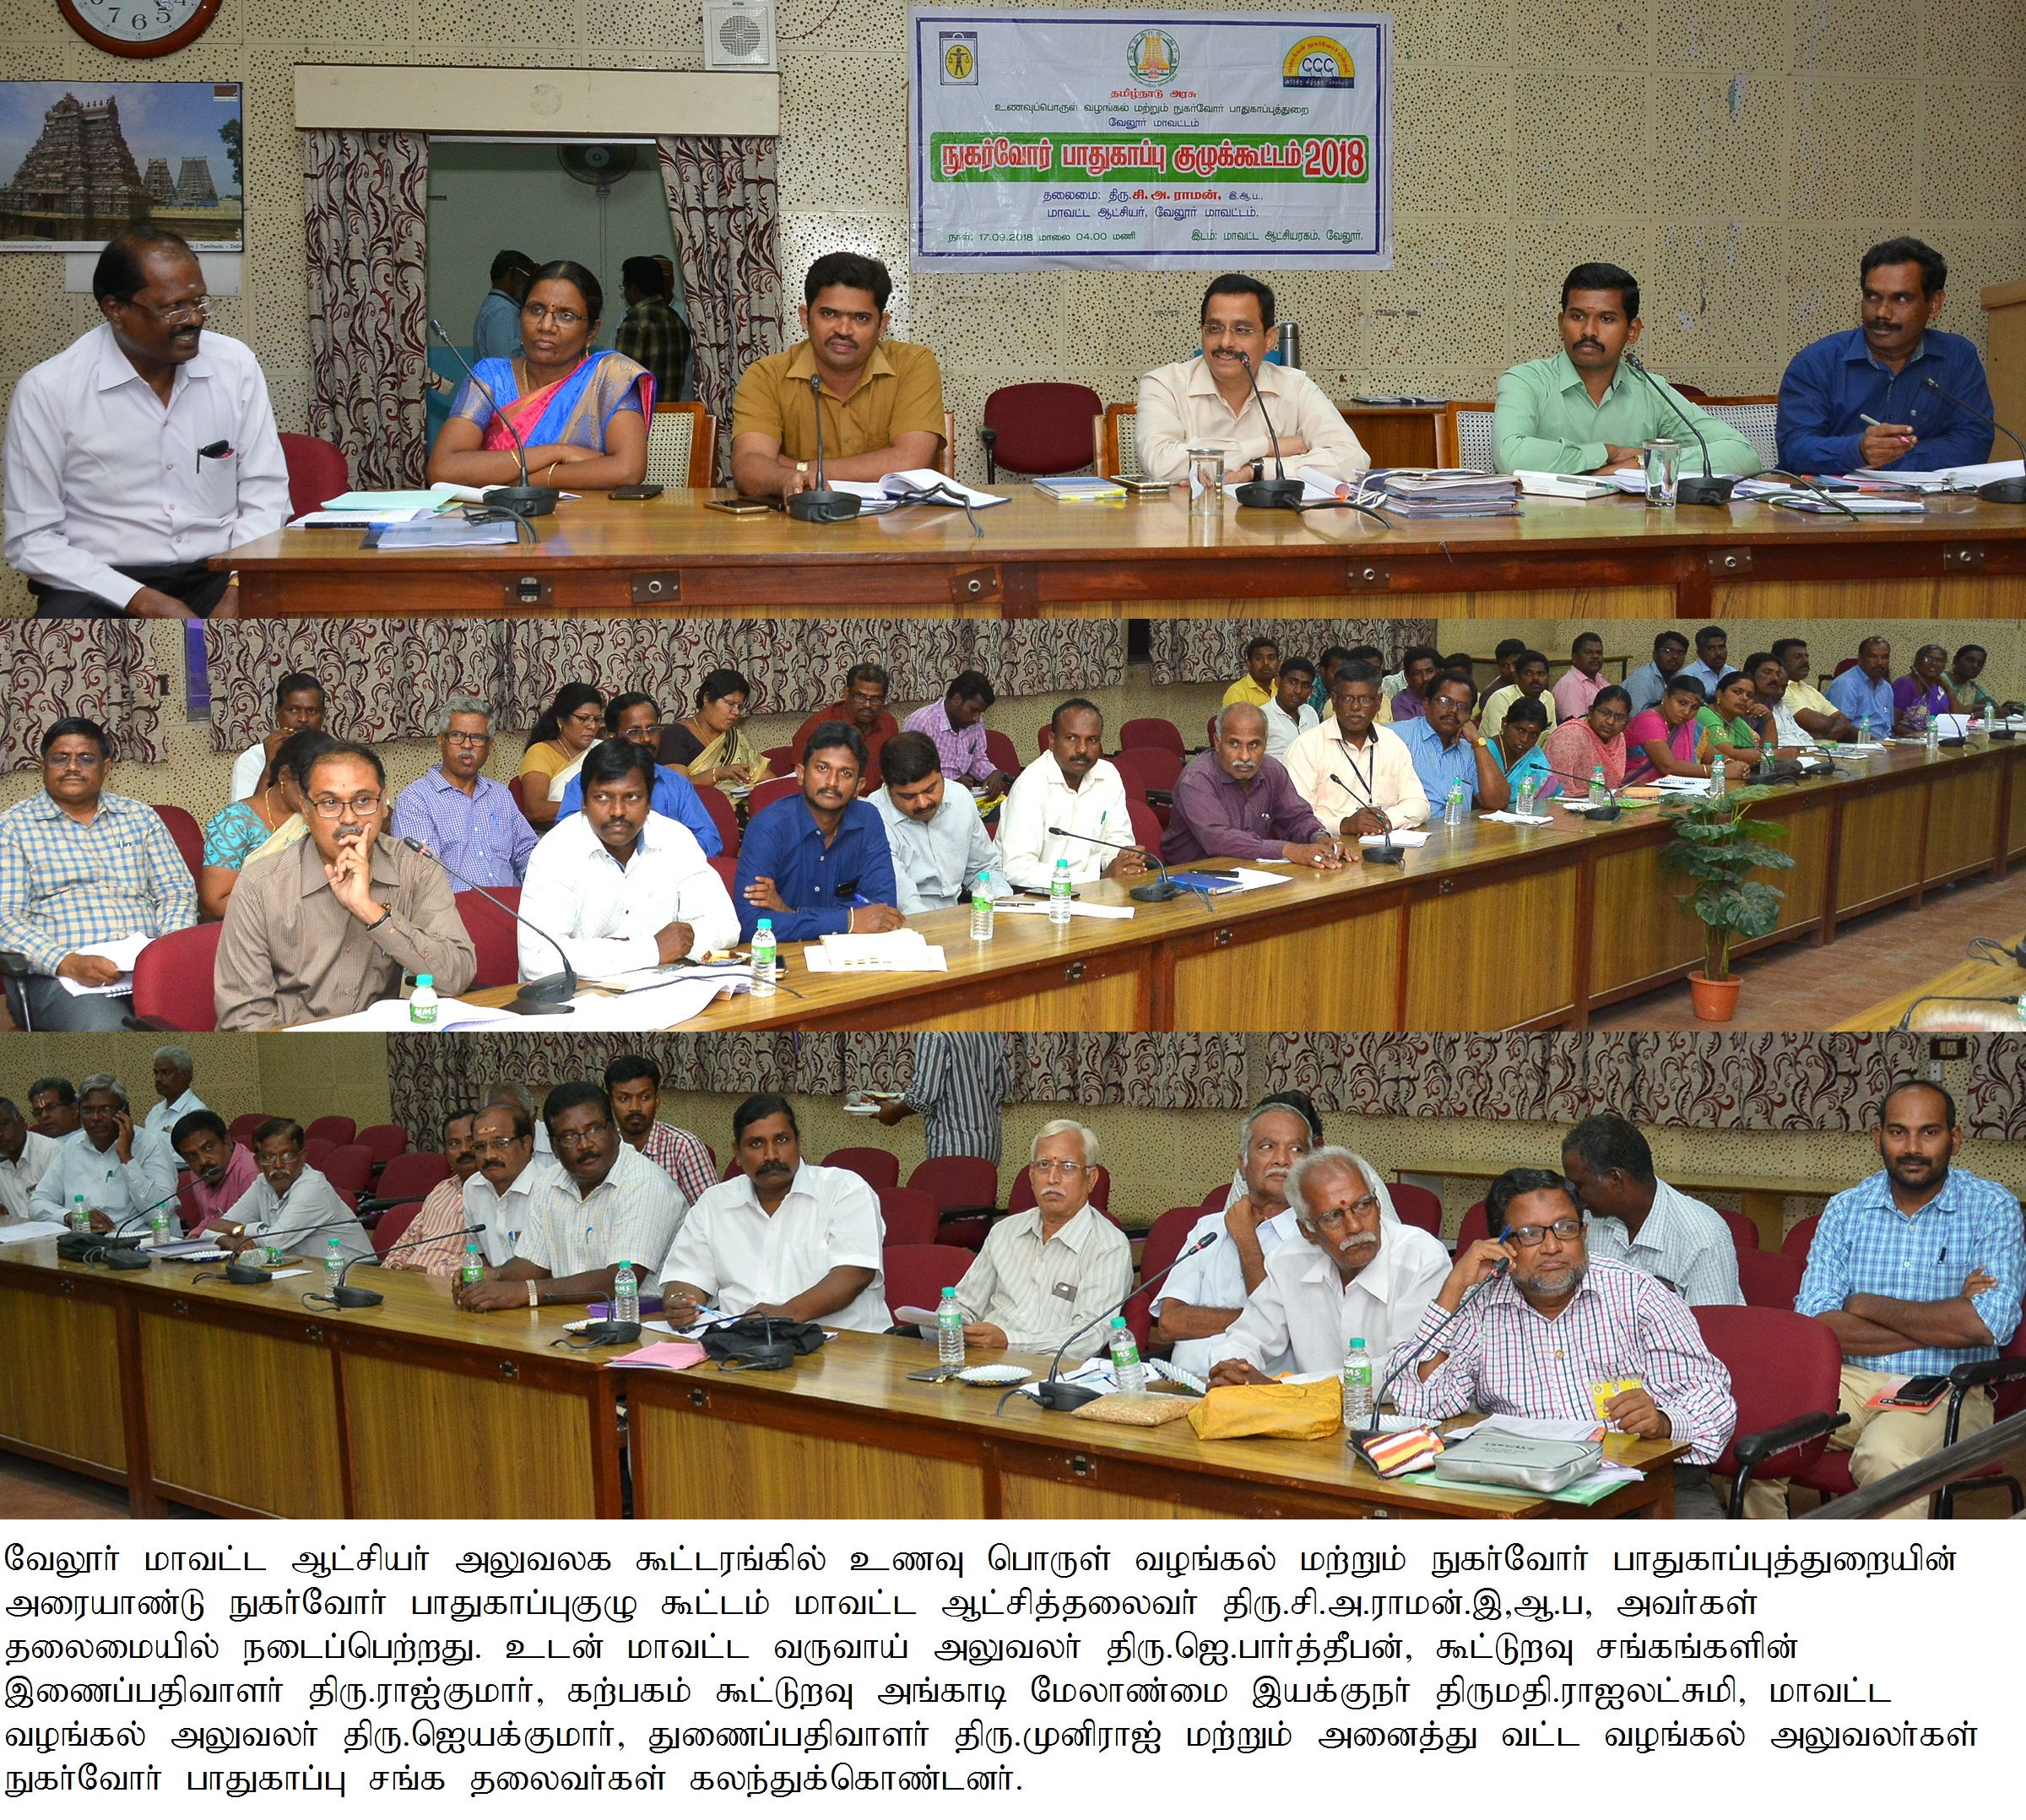 Consumer protection committee meeting 17/09/2018